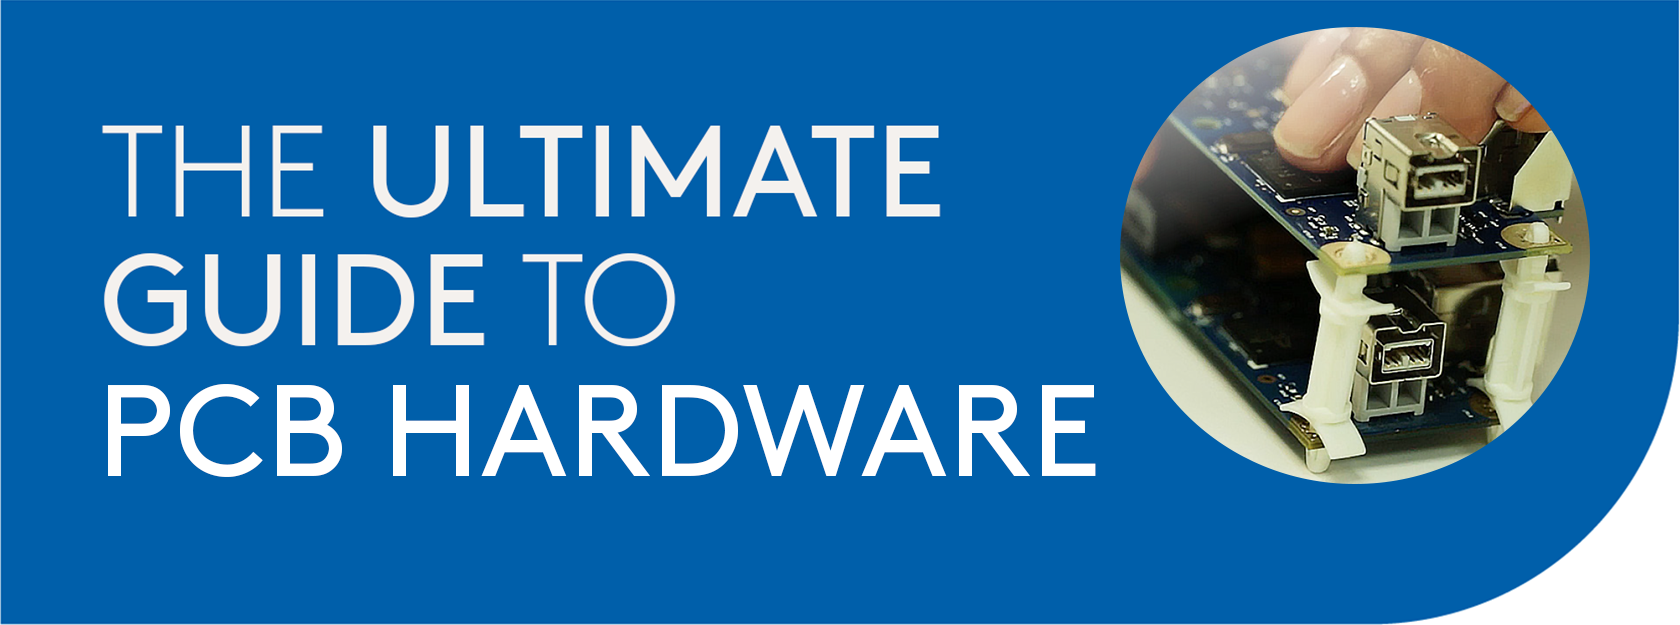 Ultimate Guide to PCB Hardware